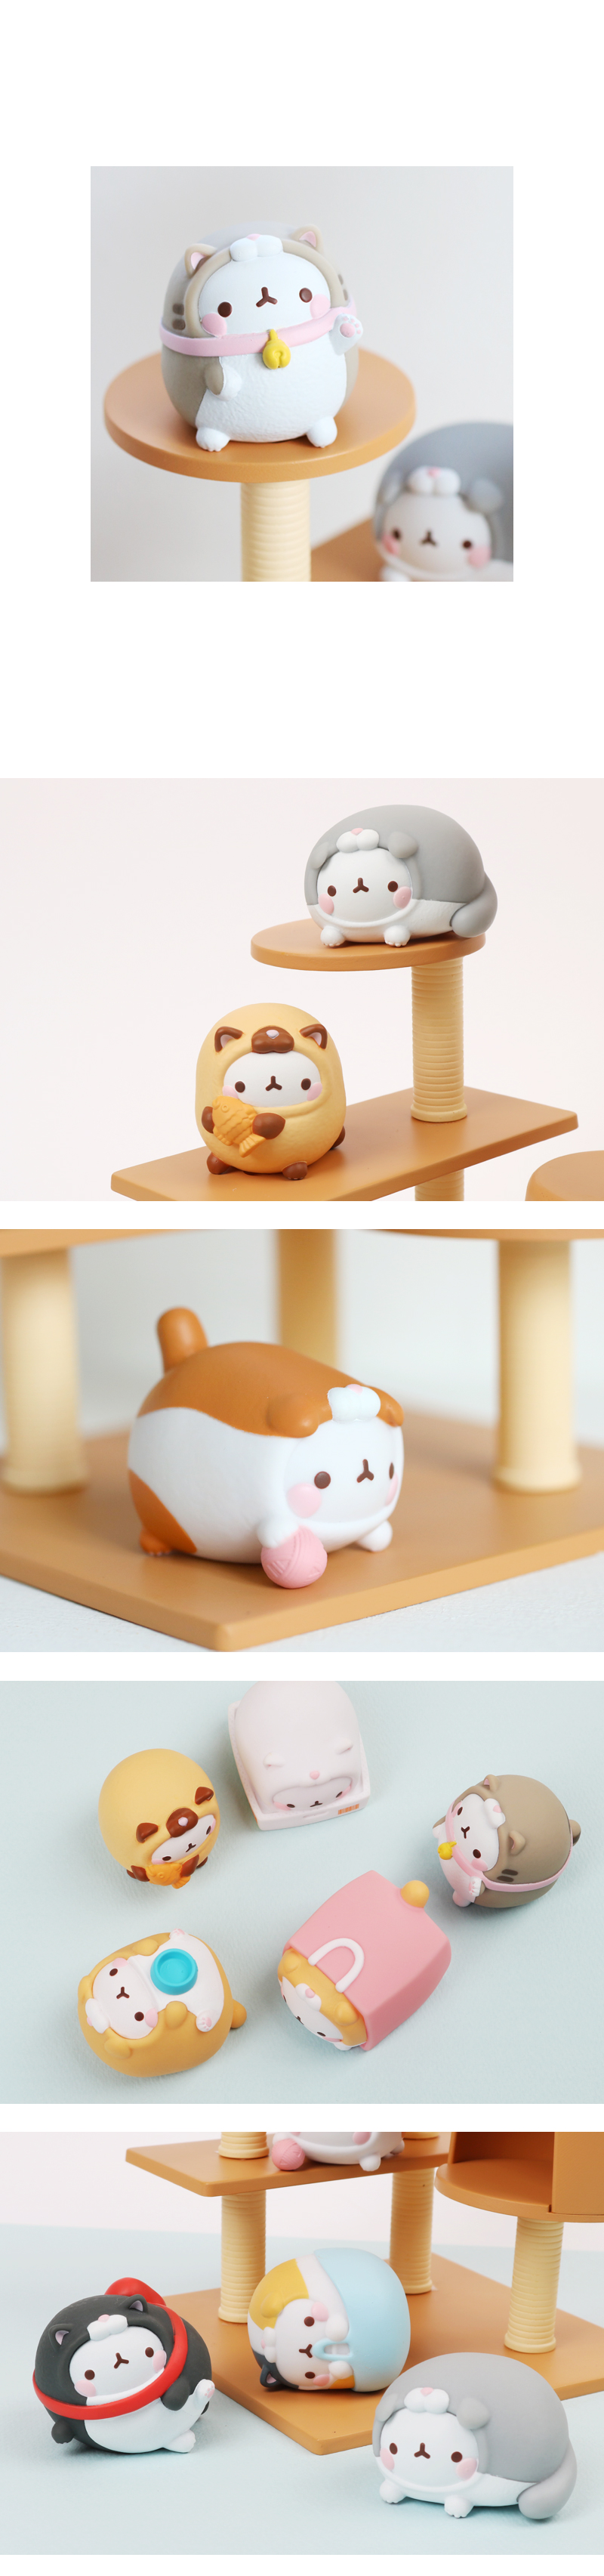 molang_figure_5th_04.jpg